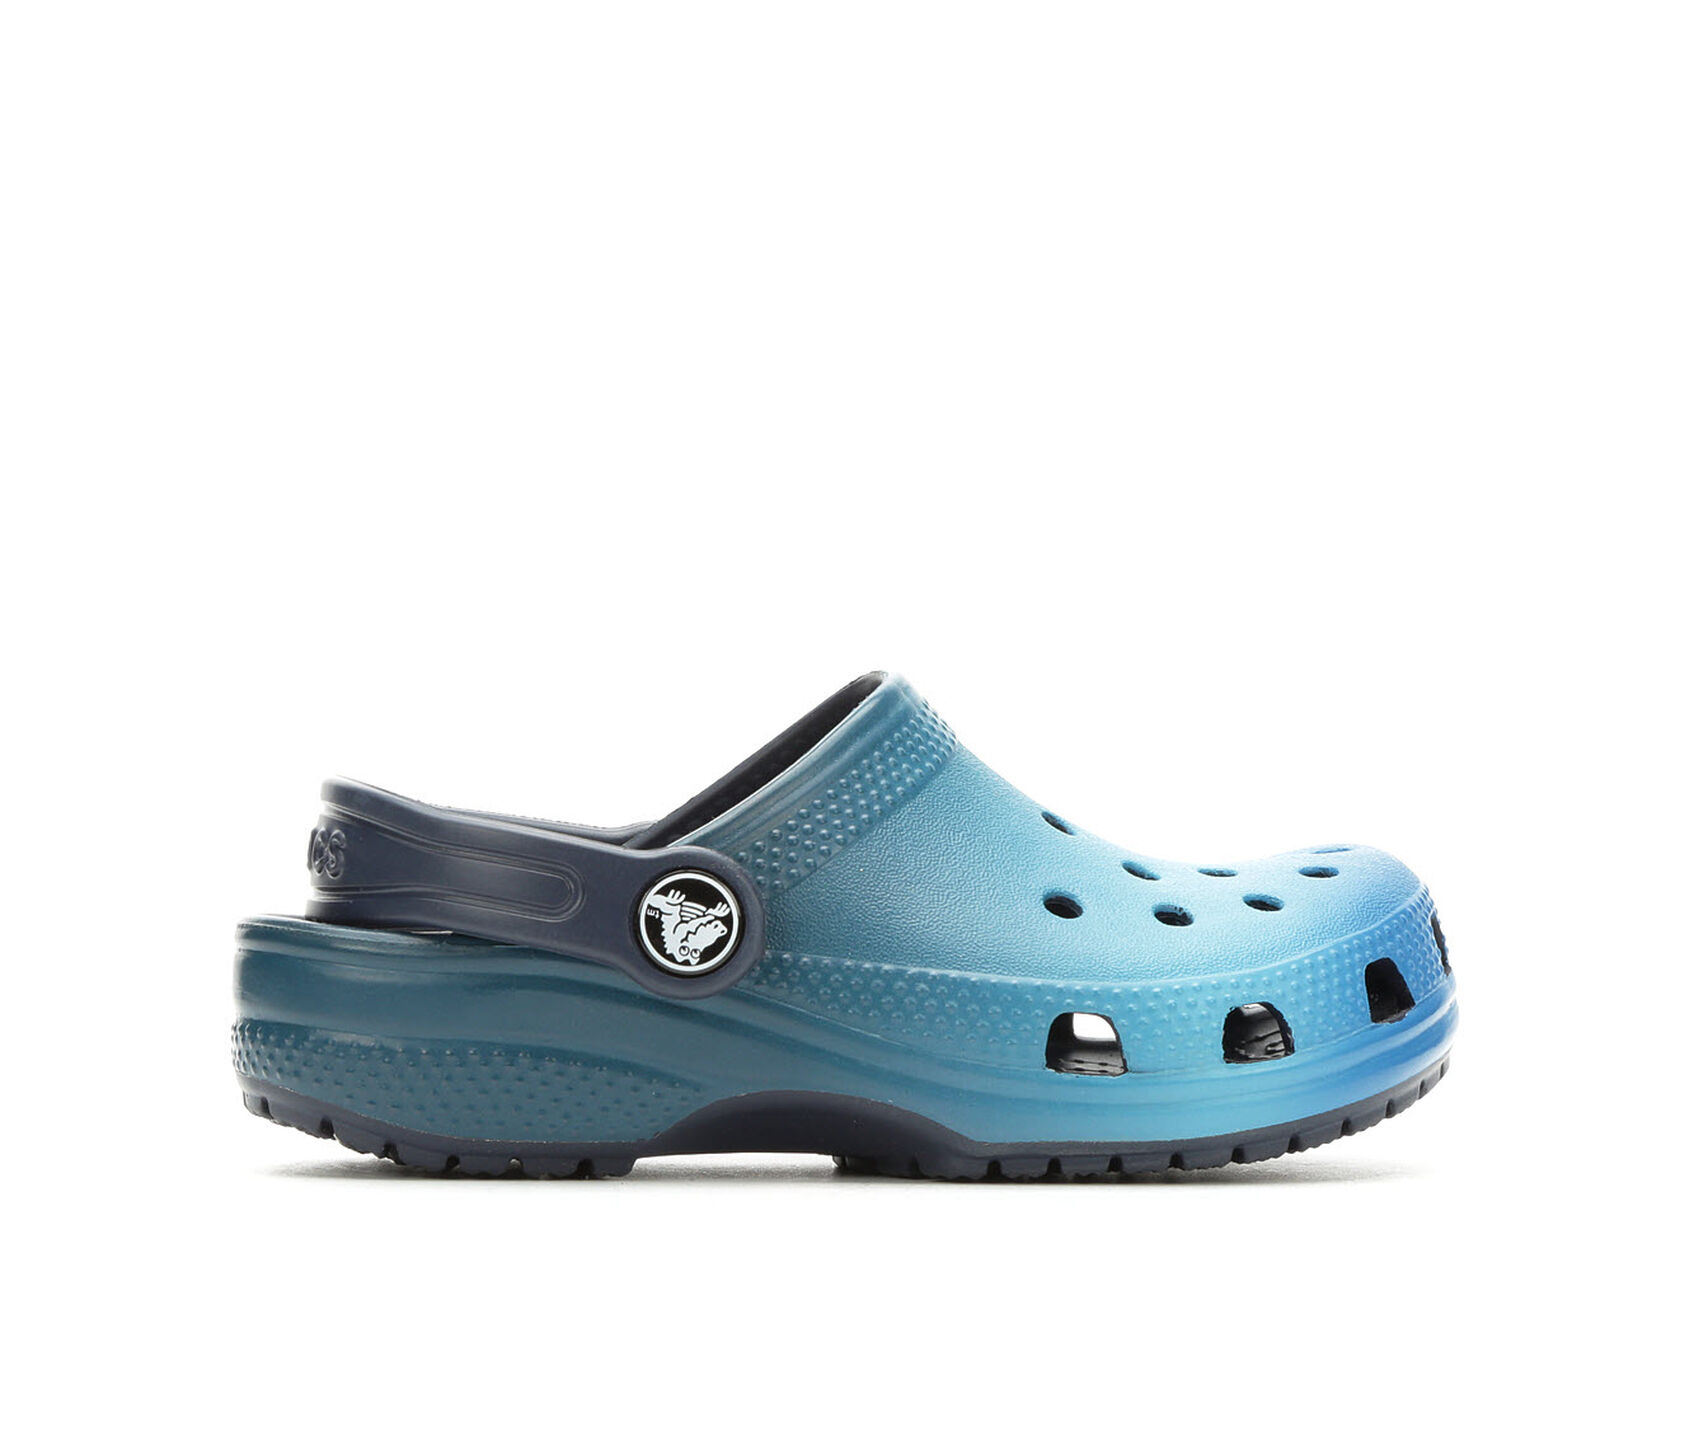 5a70fd489 ... Crocs Little Kid Classic Ombre Clog. Previous